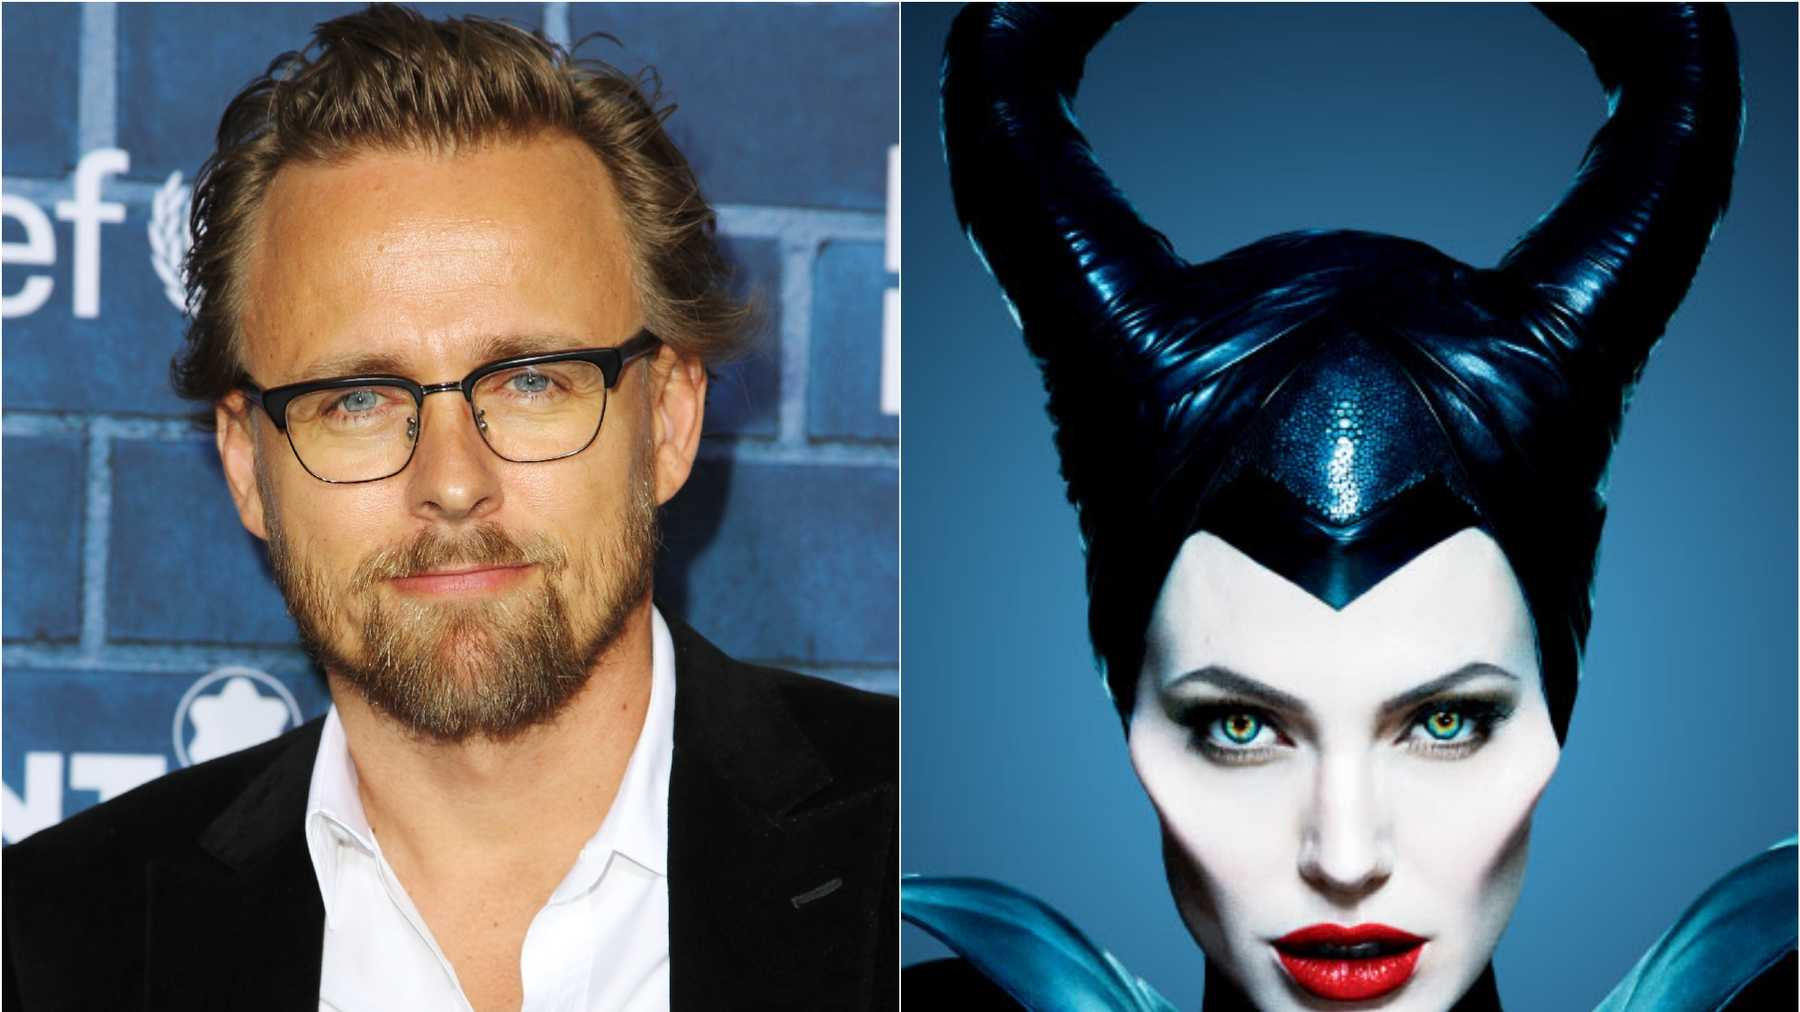 Joachim Rønning On To Direct Maleficent 2 | Movies | Empire